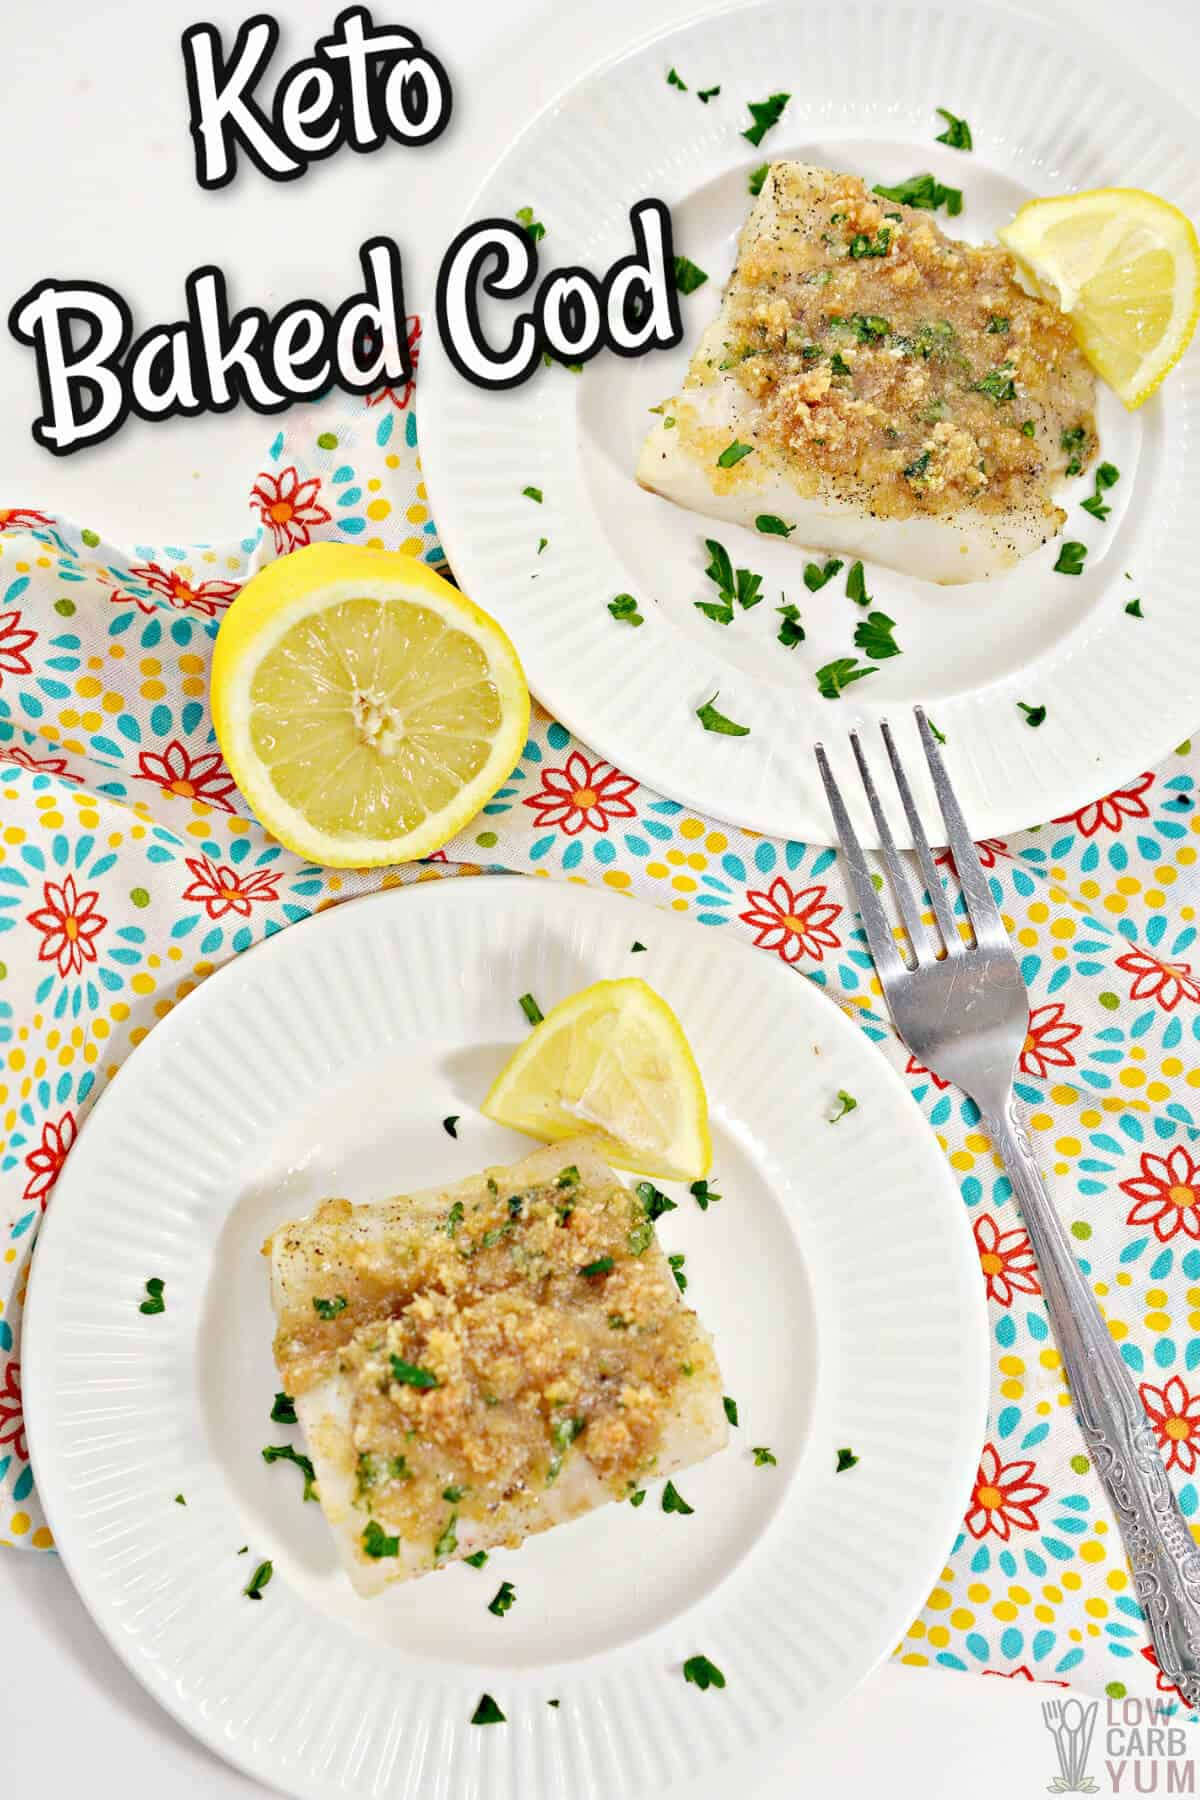 baked cod recipe keto cover image